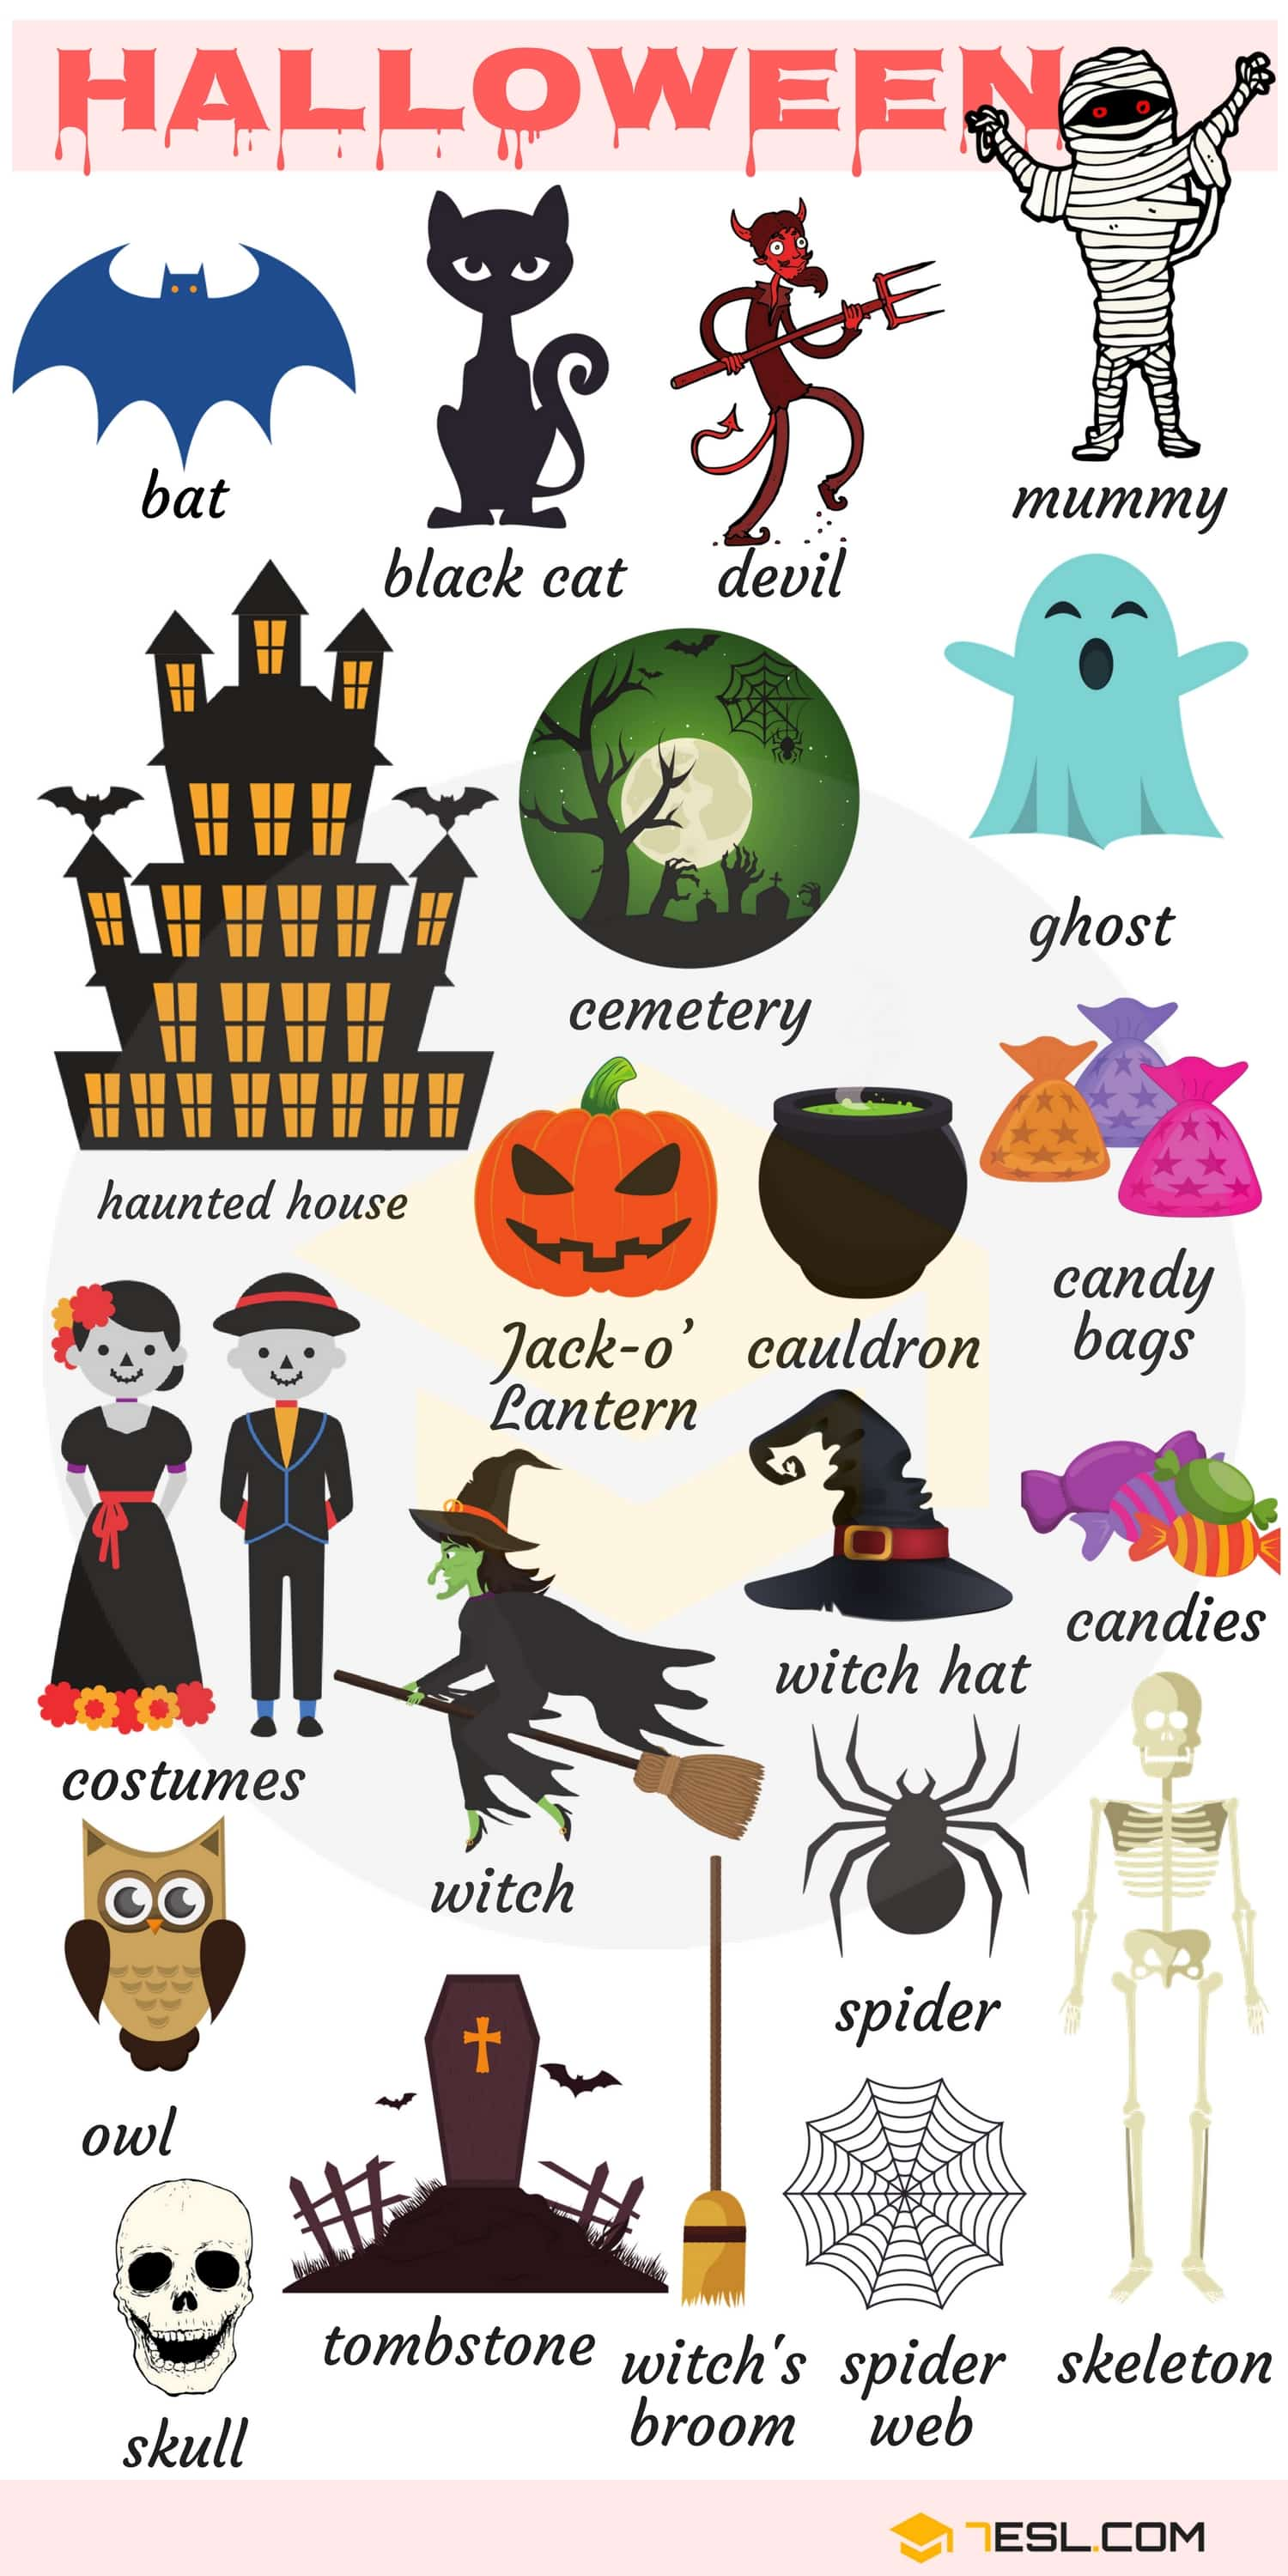 Halloween Words: Useful Halloween Vocabulary Words